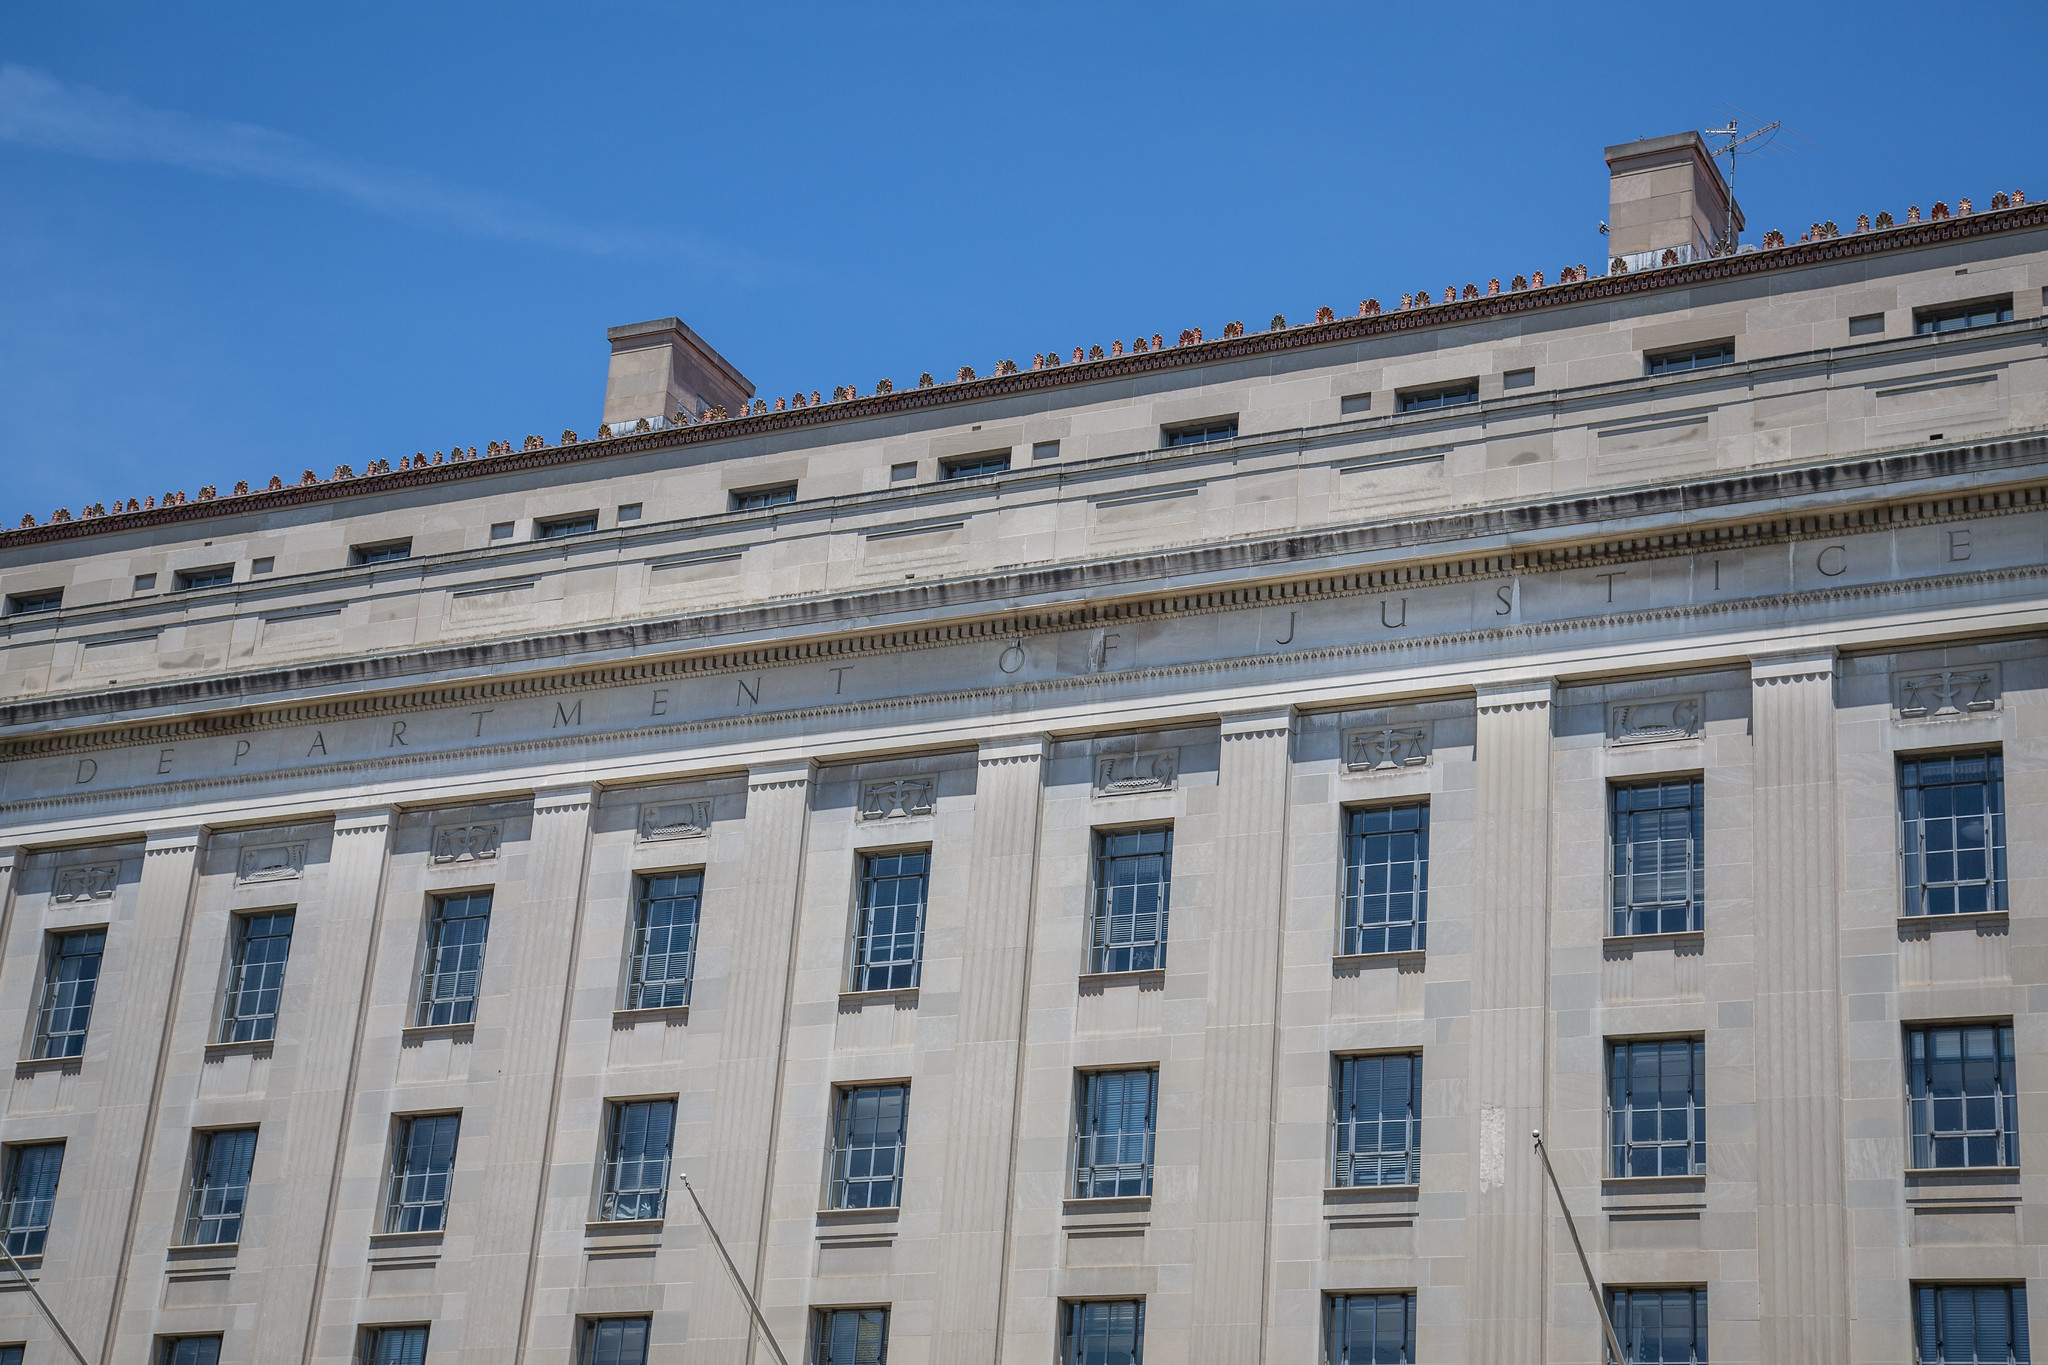 Photo of U.S. Justice Department building